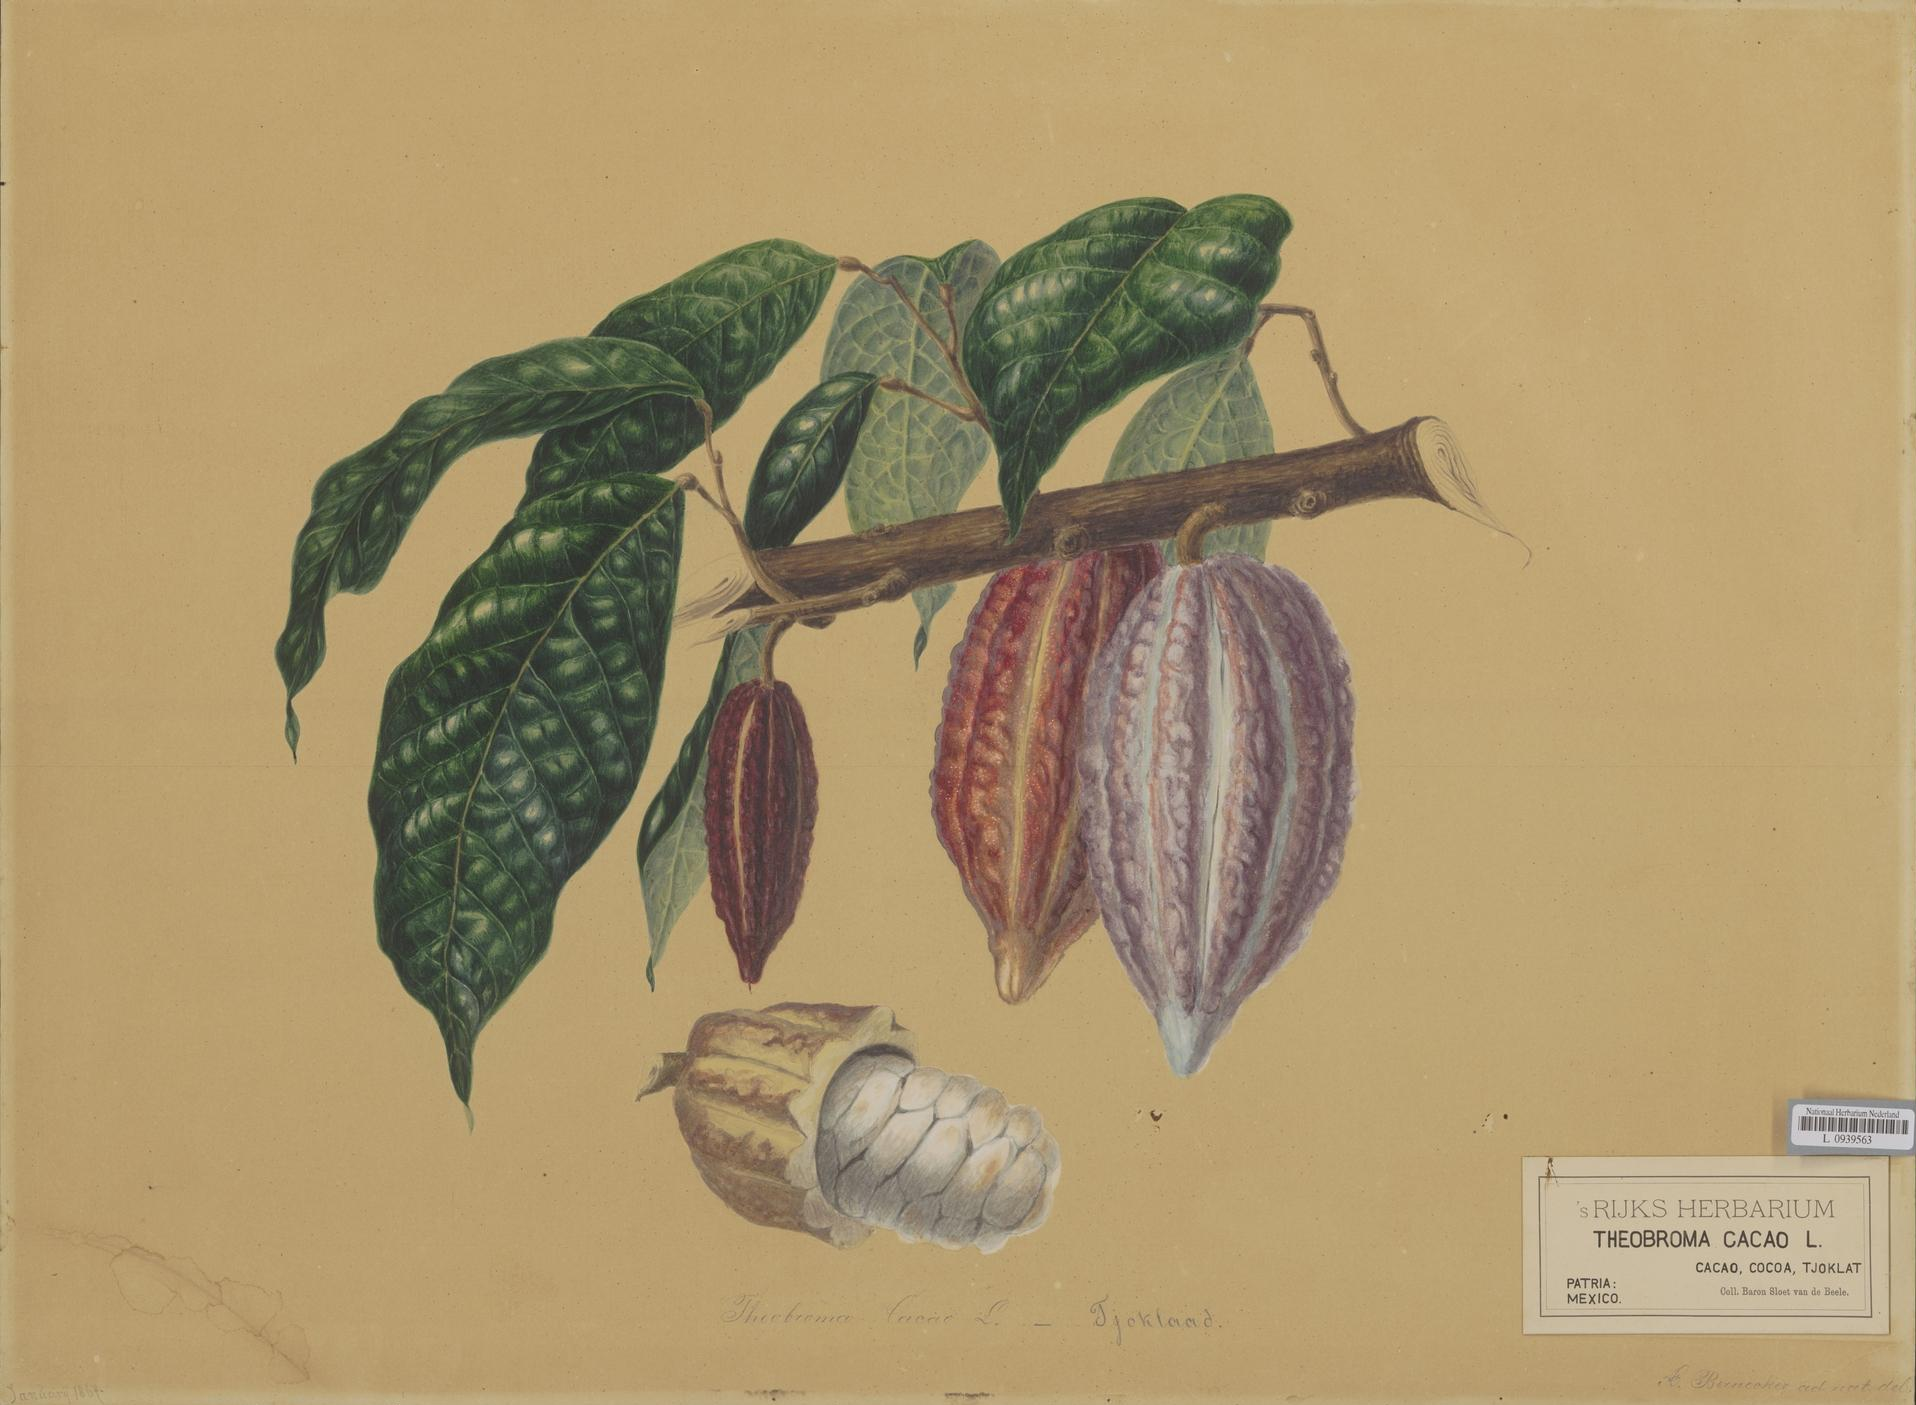 https://upload.wikimedia.org/wikipedia/commons/3/3a/Naturalis_Biodiversity_Center_-_L.0939563_-_Bernecker%2C_A._-_Theobroma_cacao_-_Artwork.jpeg